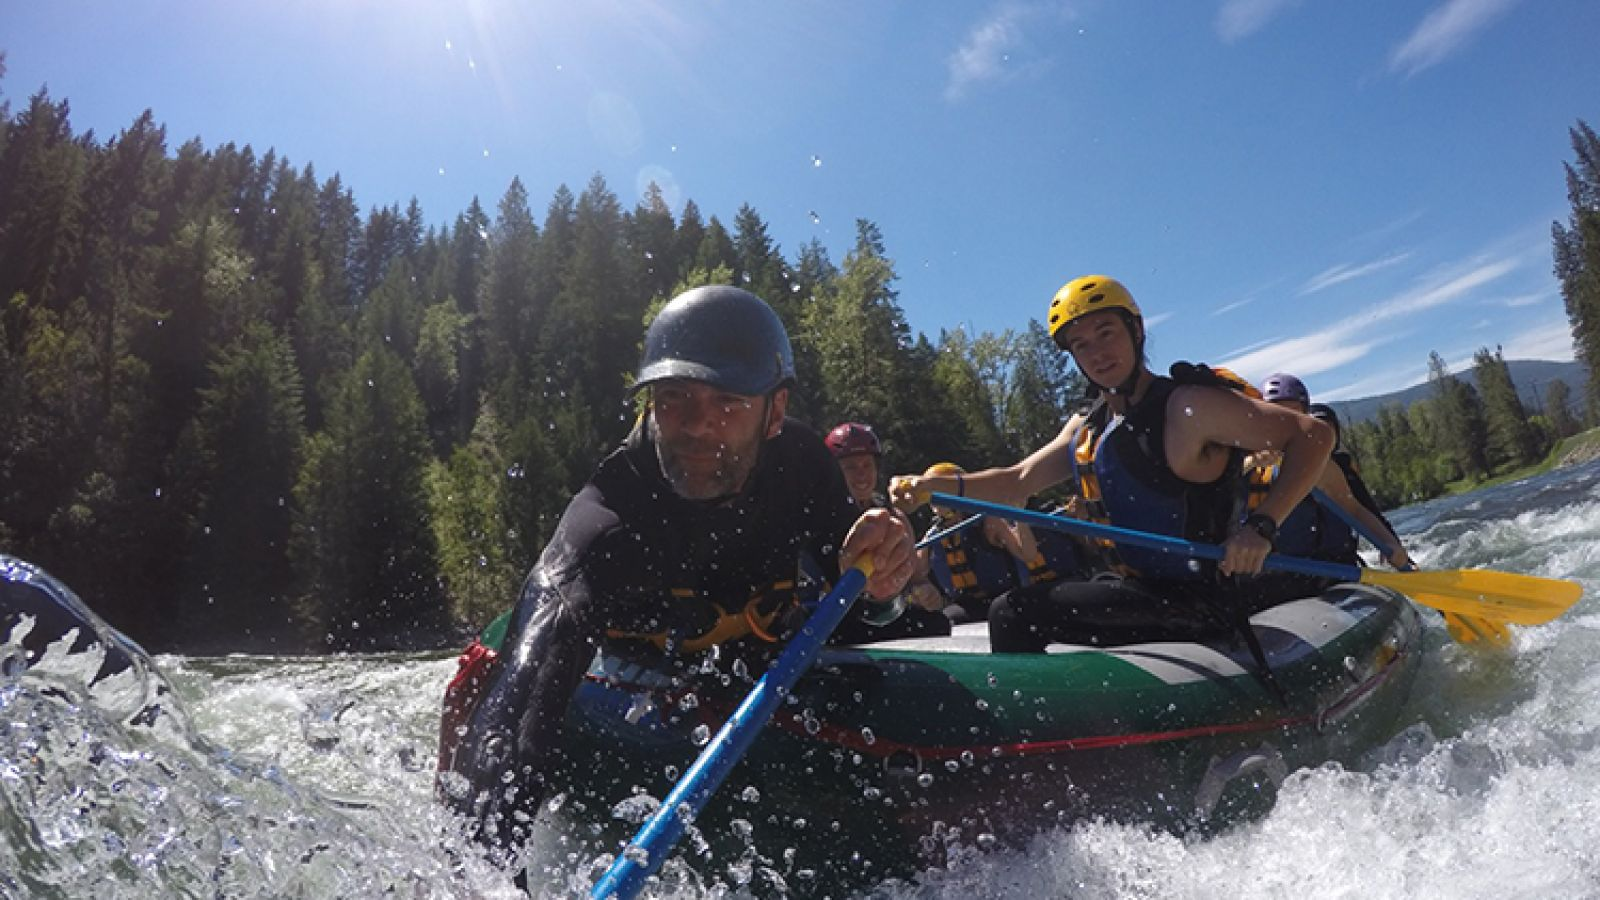 Exciting white water rafting.